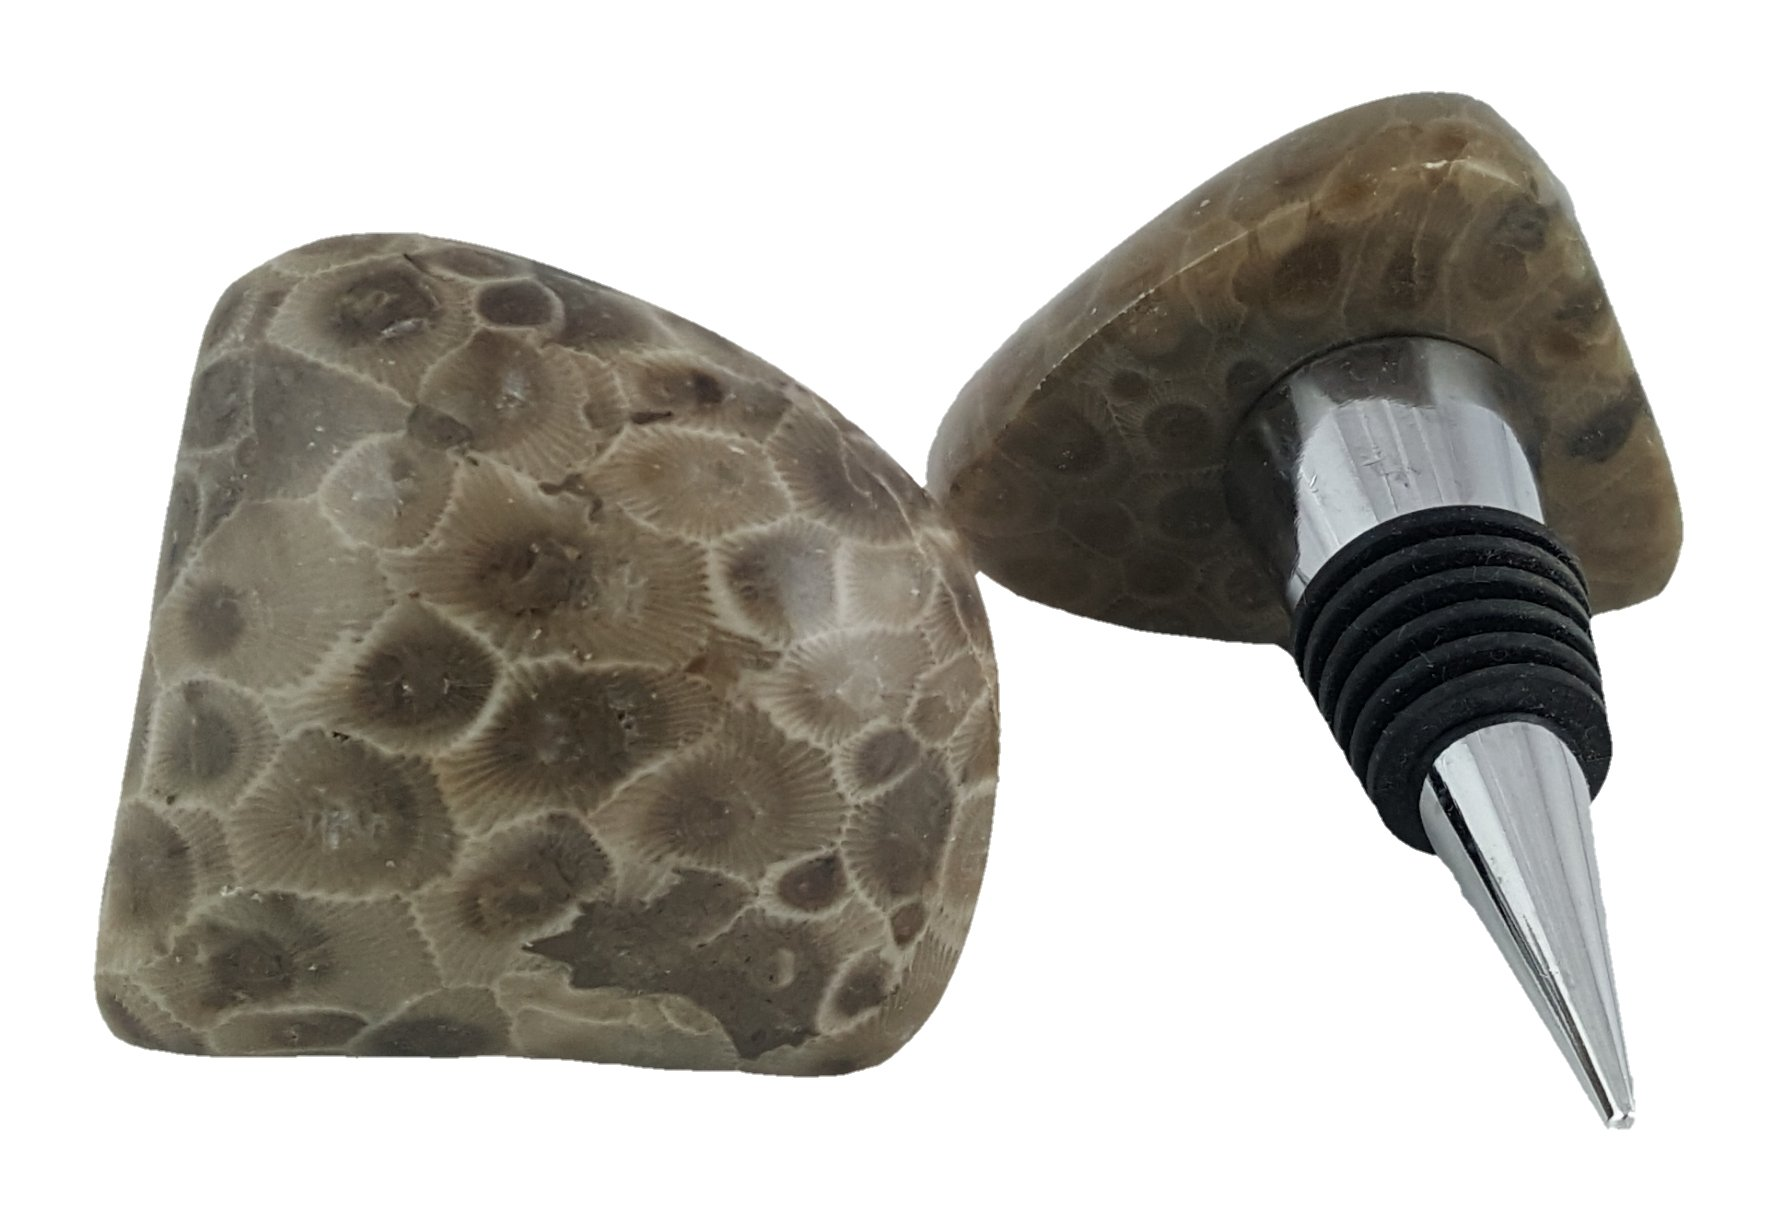 Galaxy Gifts Petoskey Stone Wine Stopper for Lovers of Wine and Michigan | Includes Complimentary Gift Bag| Made in Michigan!